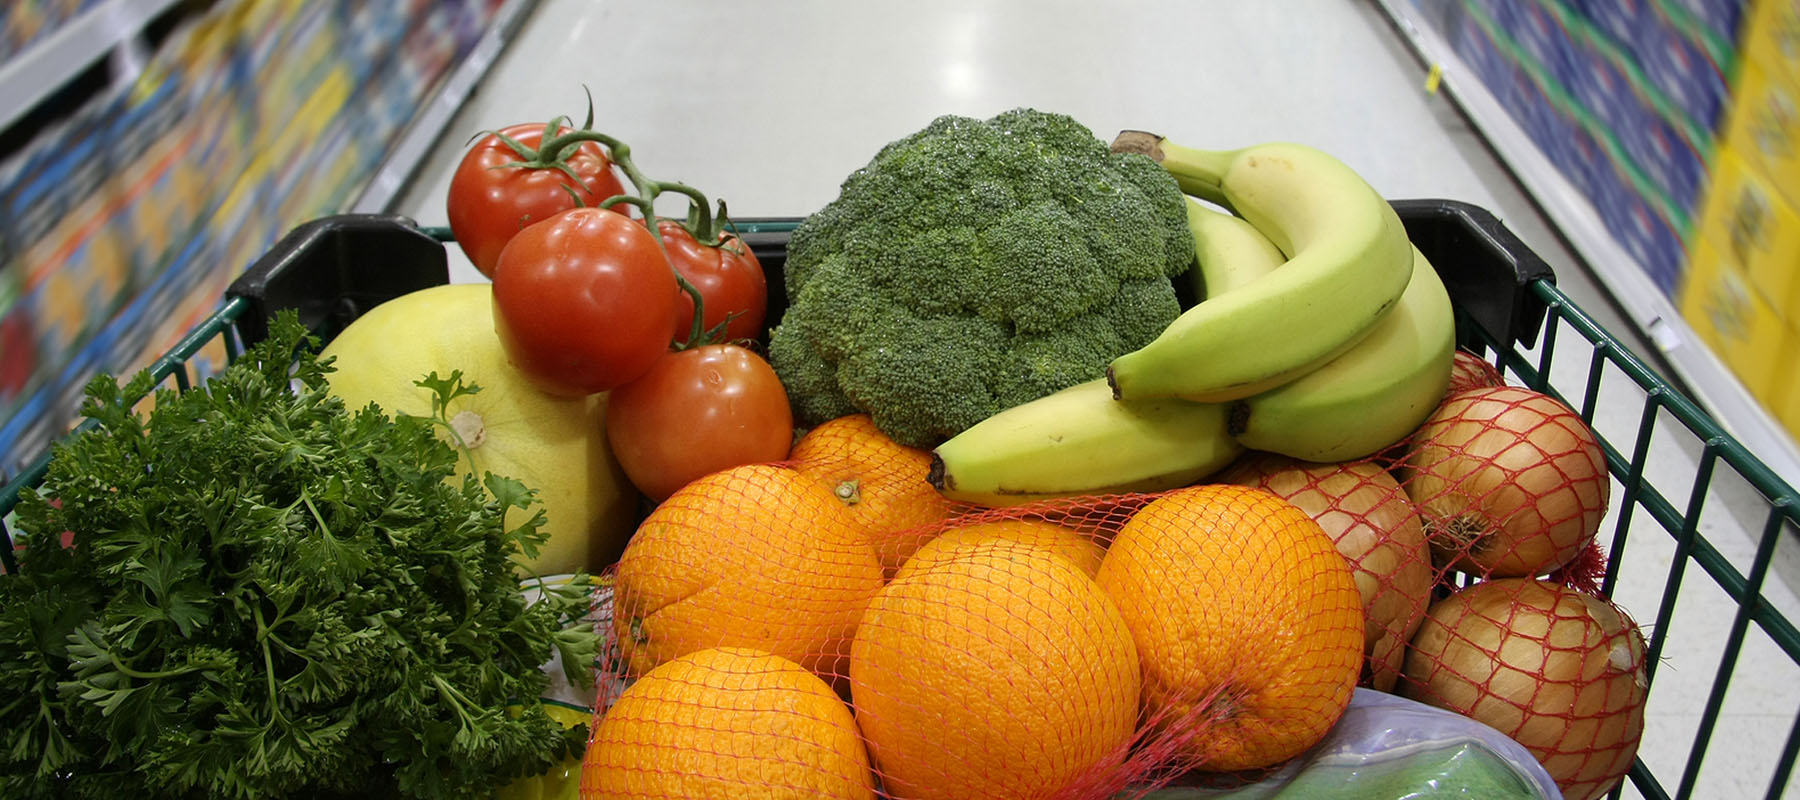 nutritious food, including organges, broccoli, bananas and more